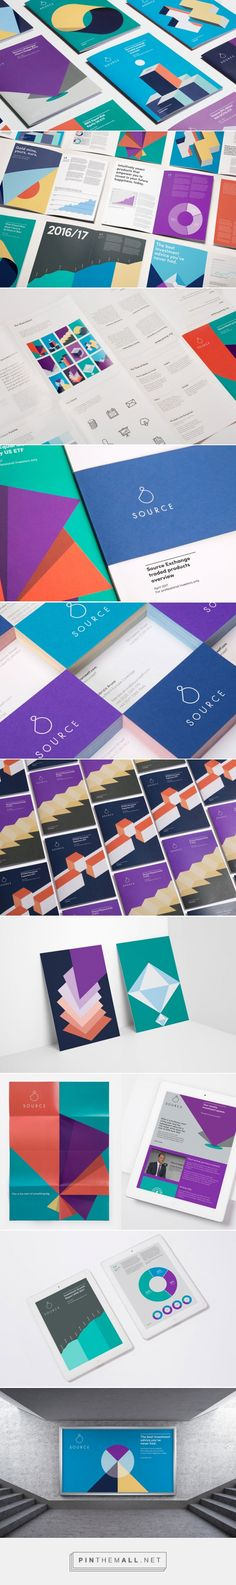 Source Investment Identity Development by Mother Design